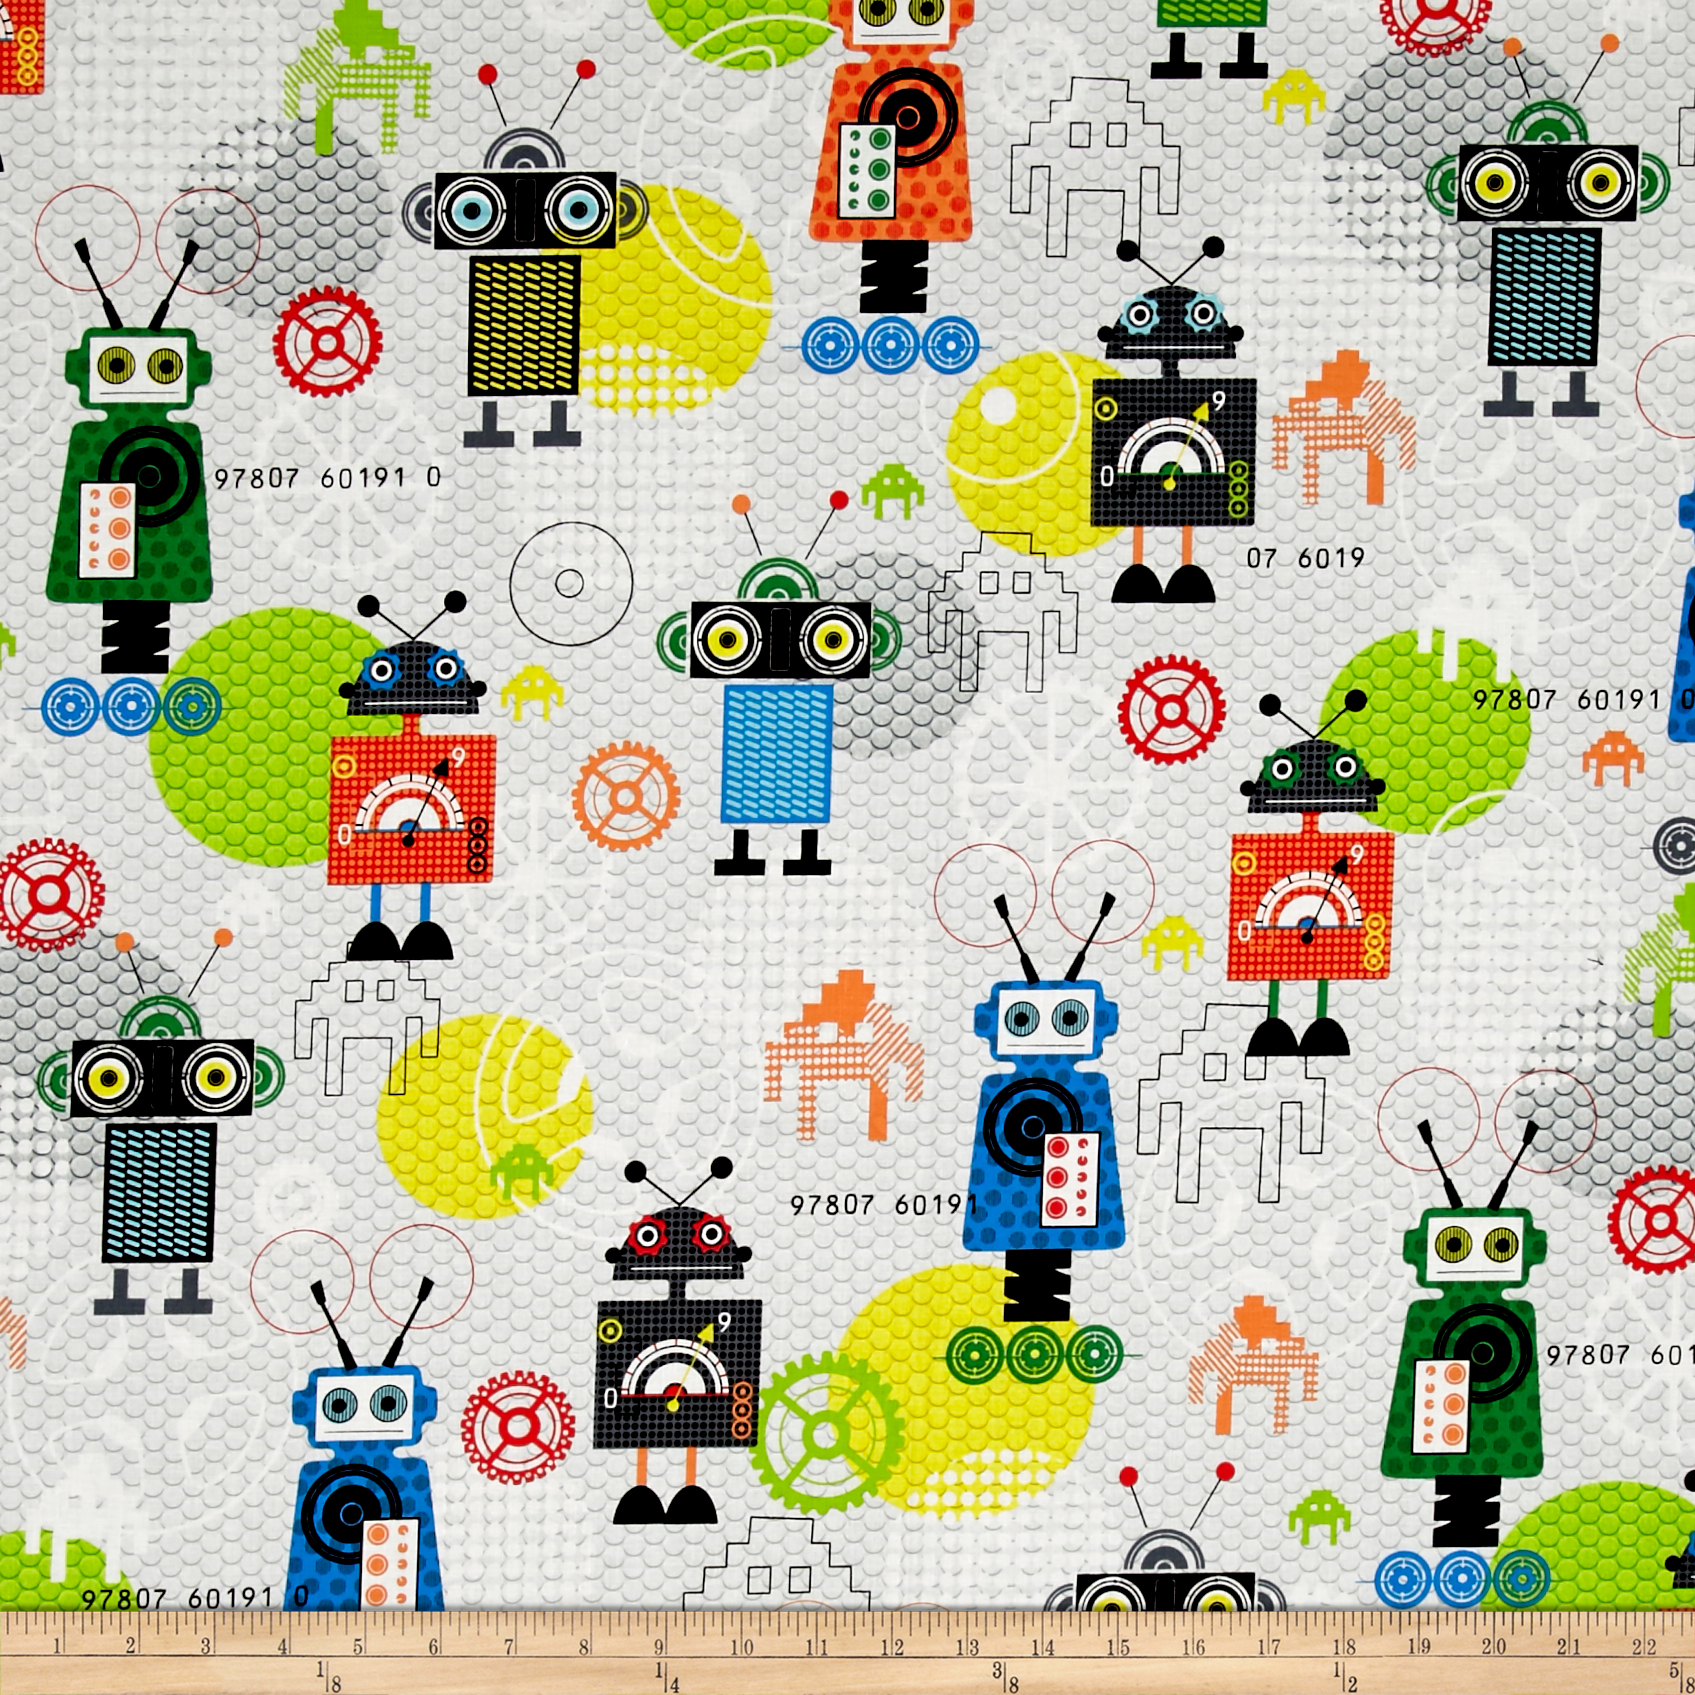 Ibot Robot Bots Grey Fabric by Red Rooster in USA